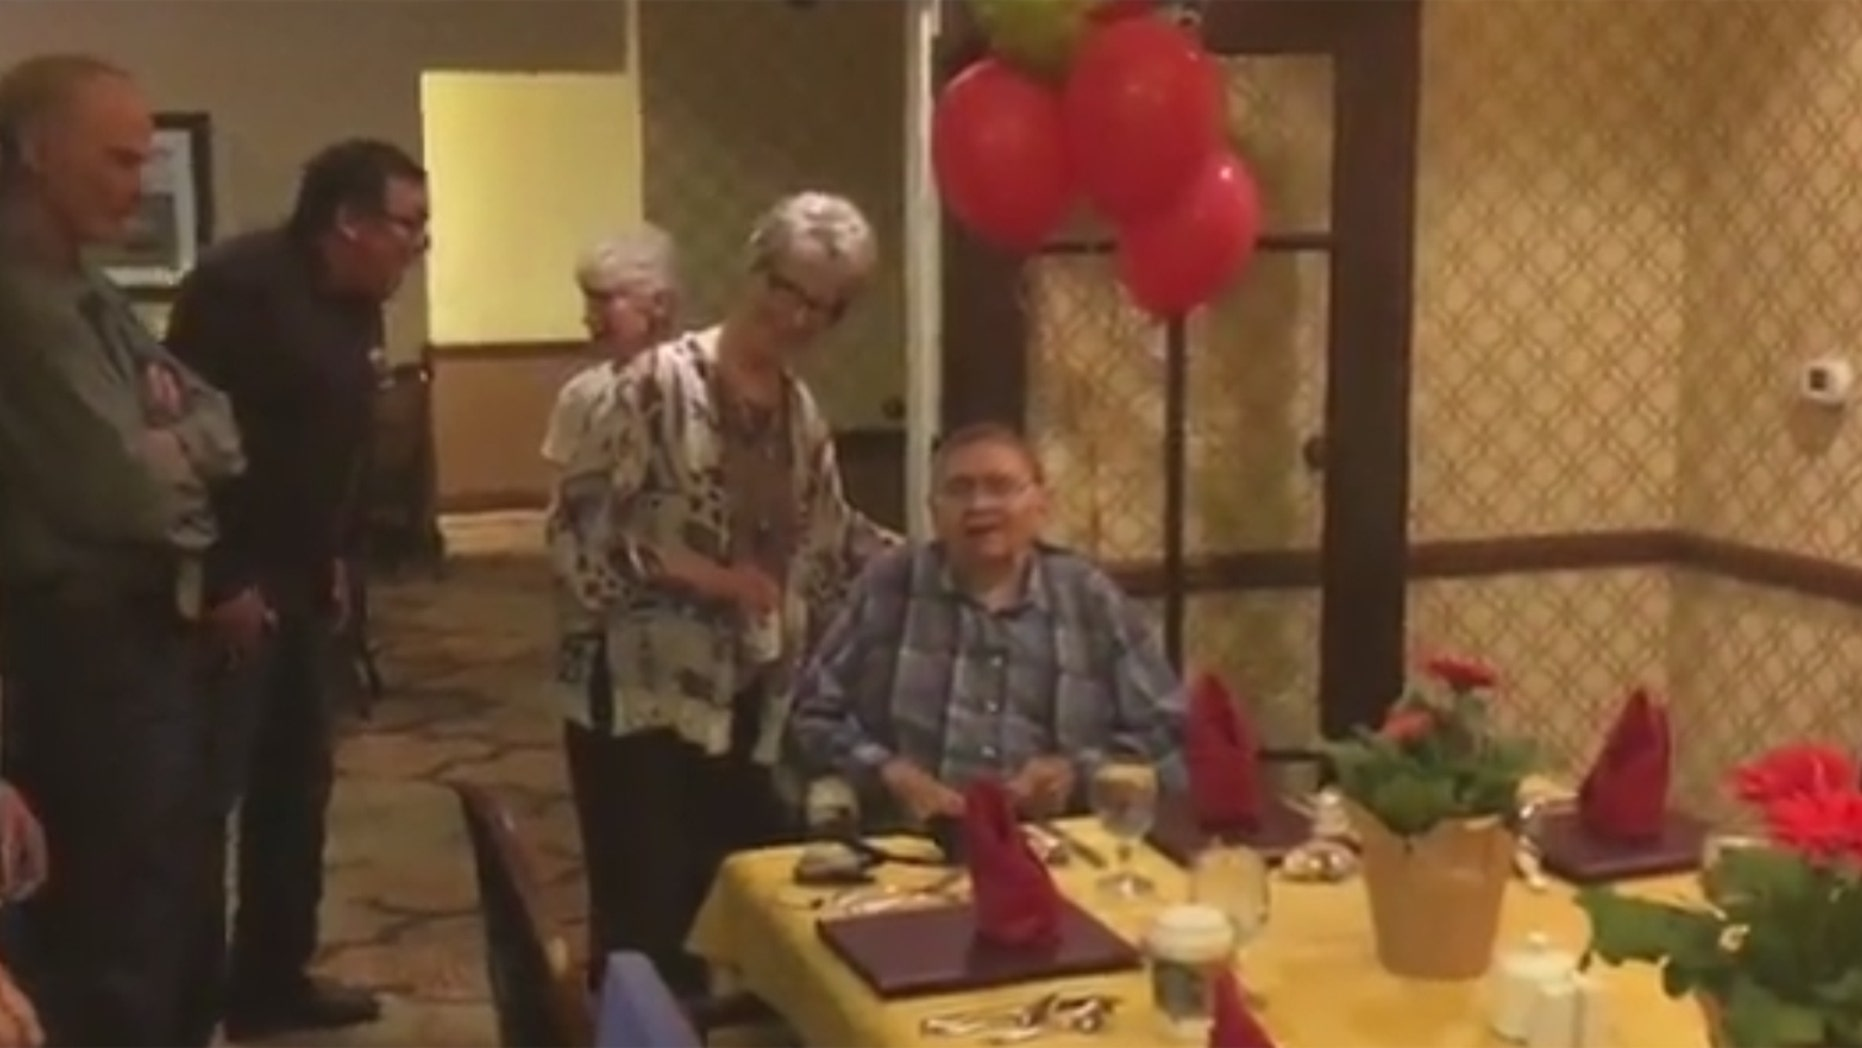 World War II Veteran, Nick Westendorf celebrated his 104th birthday with family and friends.